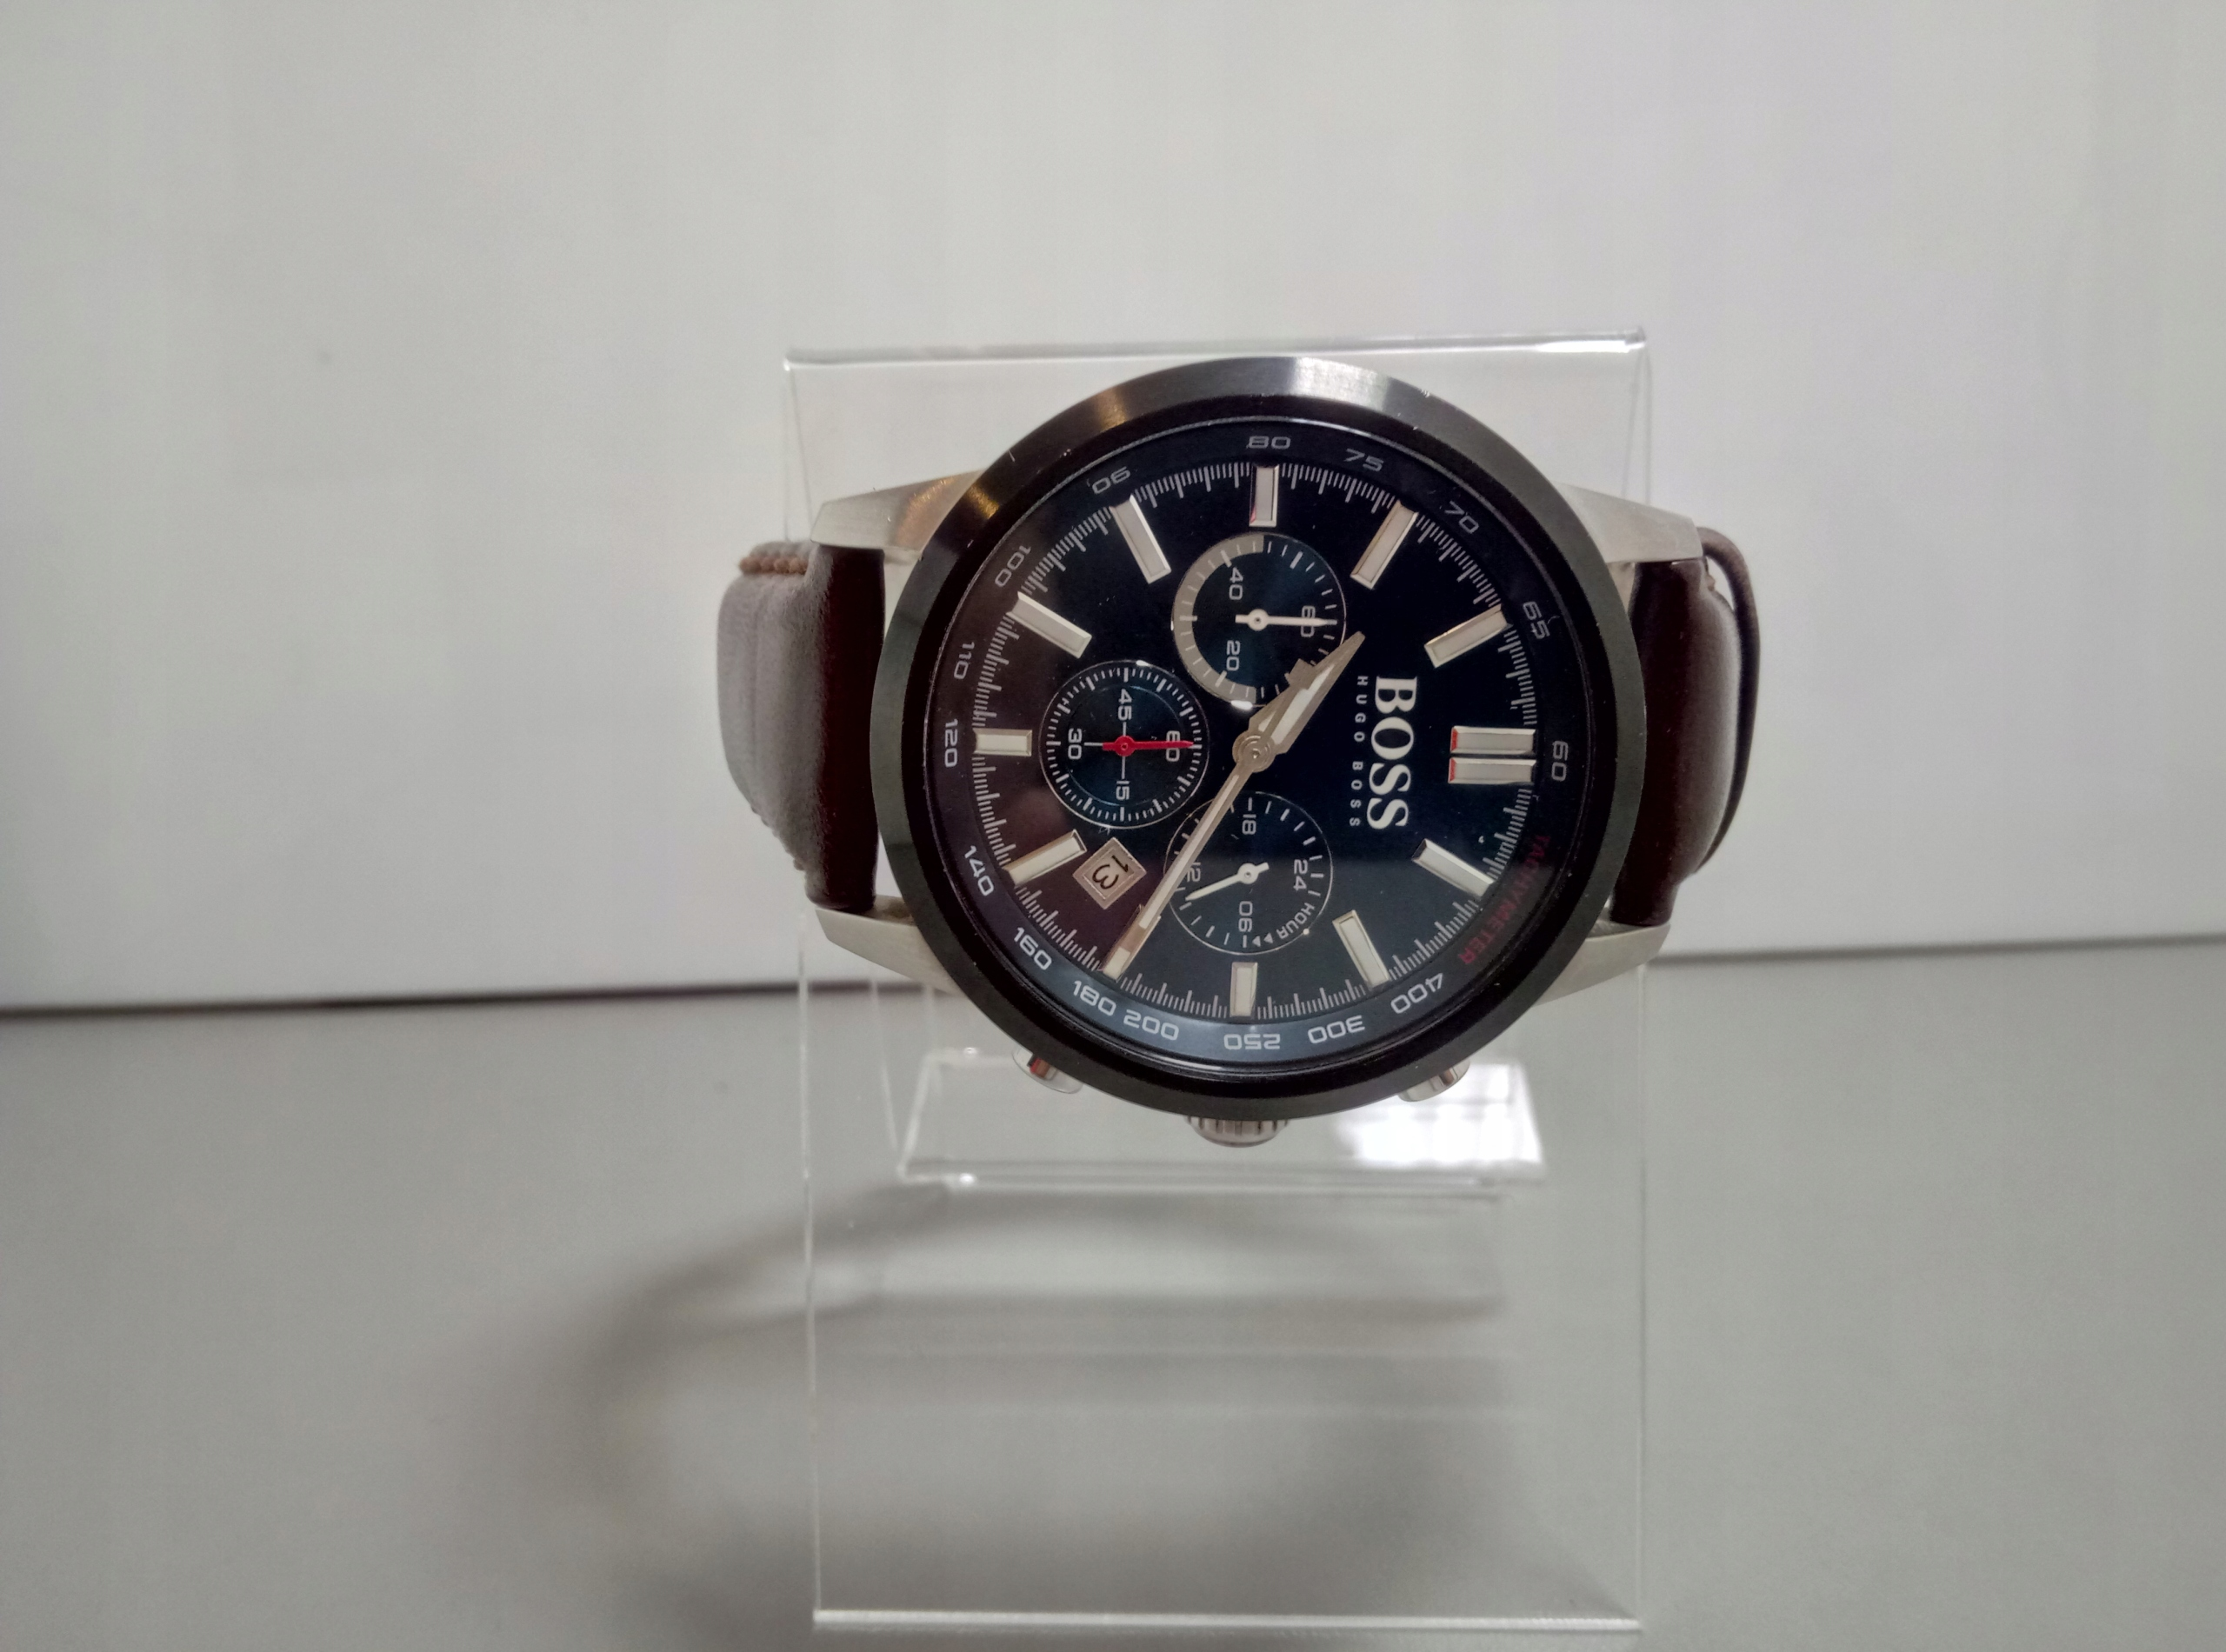 Zegarek Hugo Boss Racing 1513185 2784/10